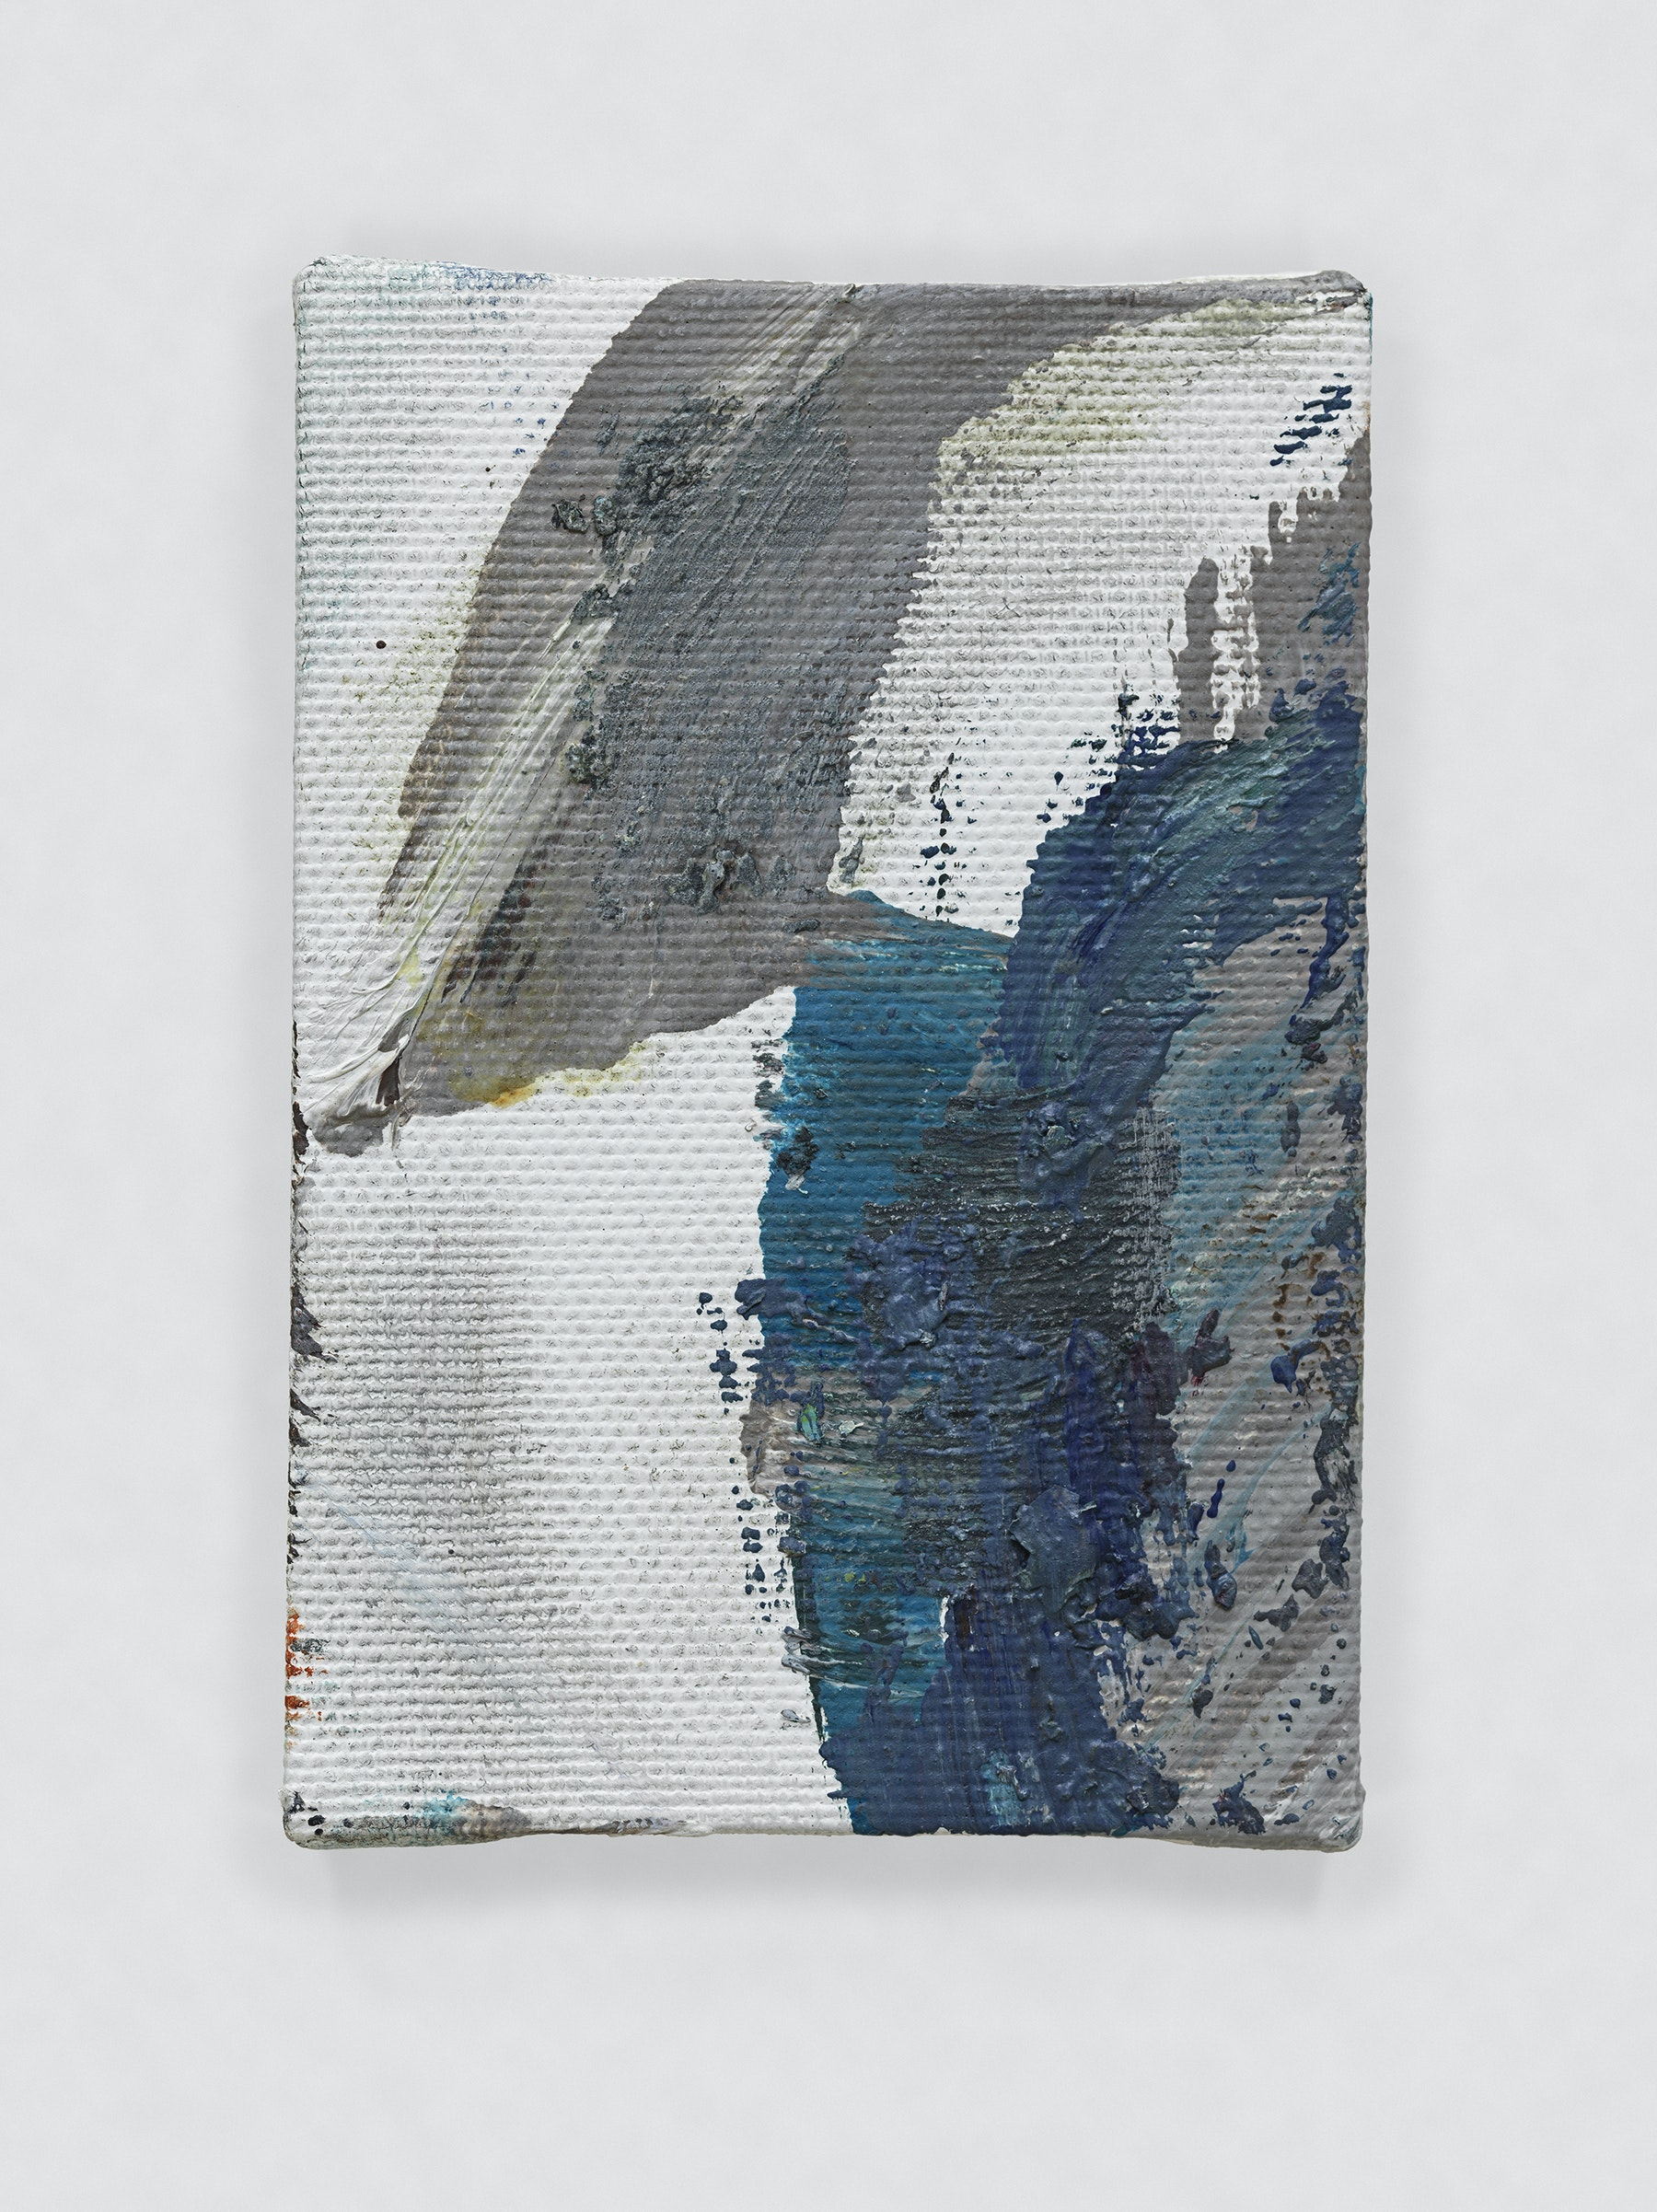 """Louise Fishman """"UNTITLED,"""" 2011 Oil on canvas 4 x 2.75"""" [HxW] (10.16 x 6.99 cm) Inventory #FIS130 Courtesy of the artist and Vielmetter Los Angeles Photo credit: Genevieve Hanson Signed and dated on verso"""